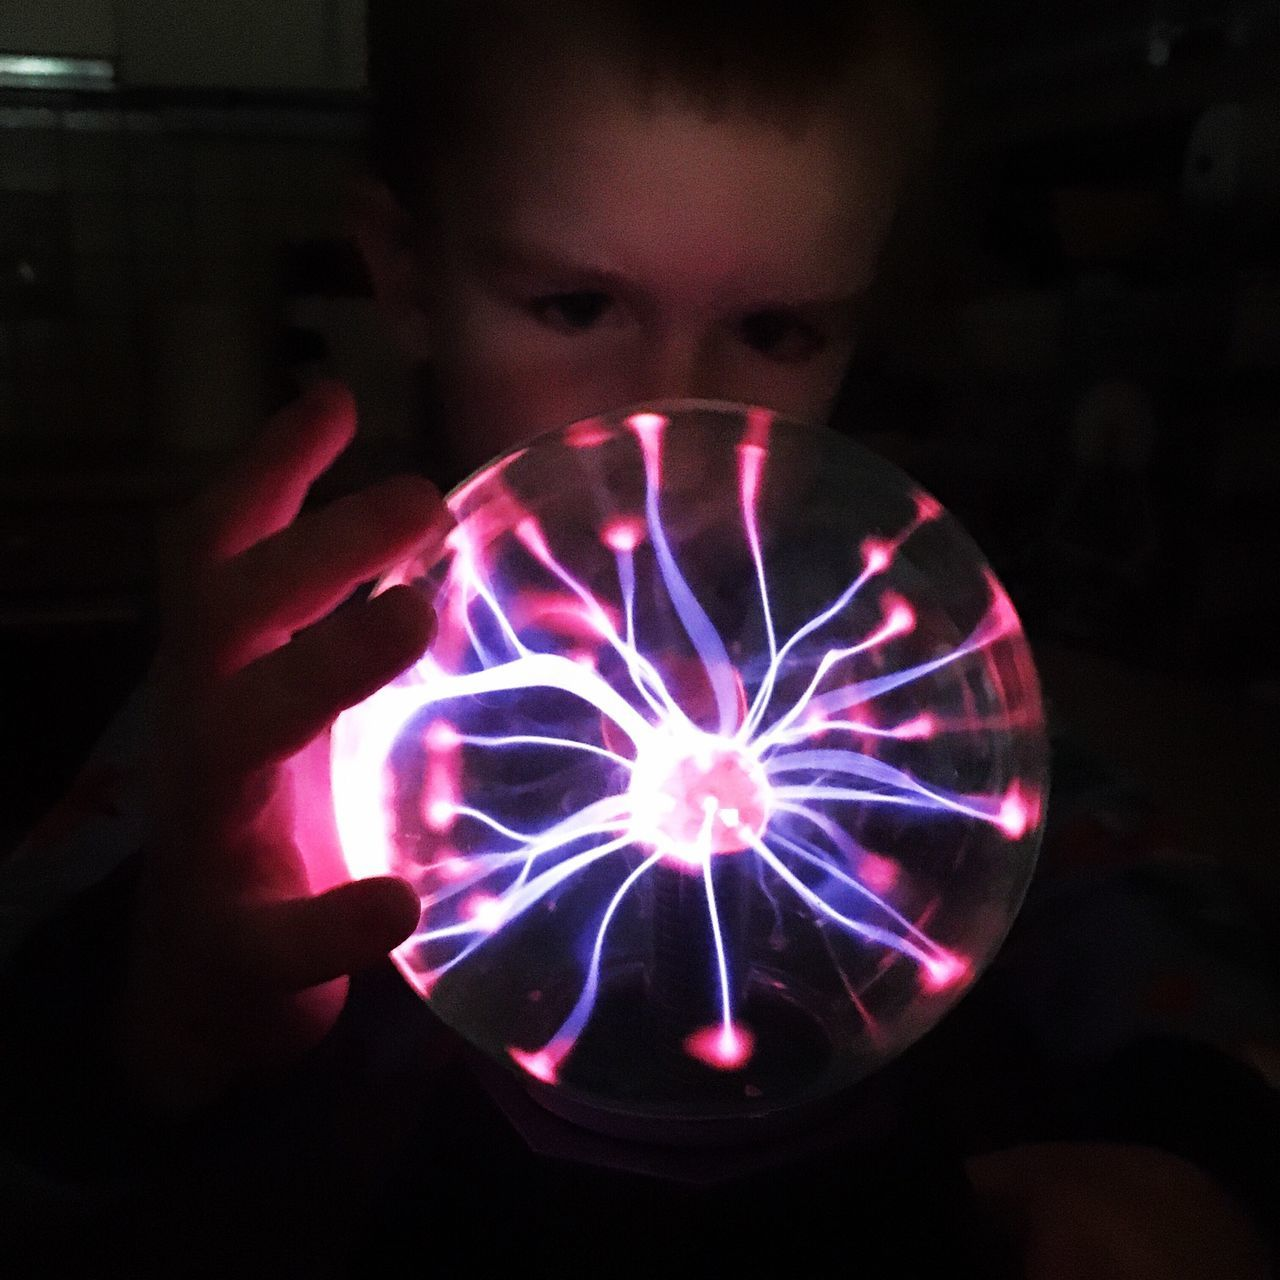 One Person Real People Holding Indoors  Childhood Close-up Human Hand Dark Night Darkness And Light Electricity  Magic Wonderful Playing Child Little Boy Electric Light Plasmaball Plasma Globe Ball Physics Science Light Plasma Plasma Ball